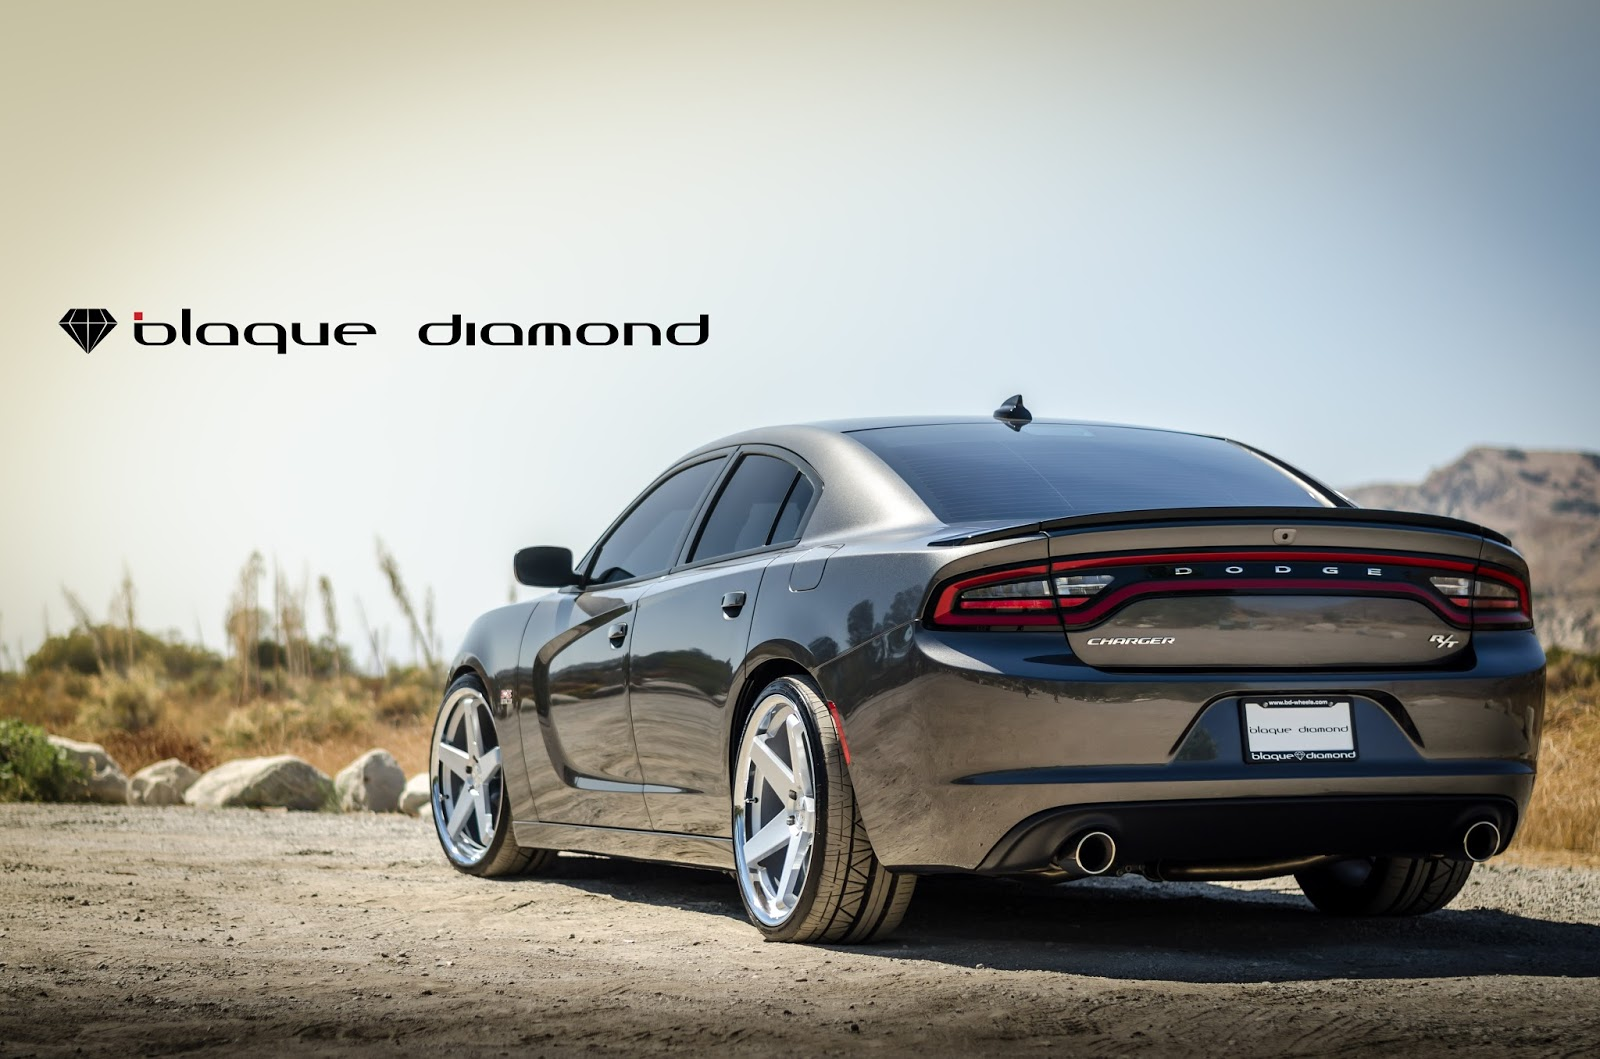 2016 Dodge Charger Fitted With 22 Inch Bd 21 S In Silver W